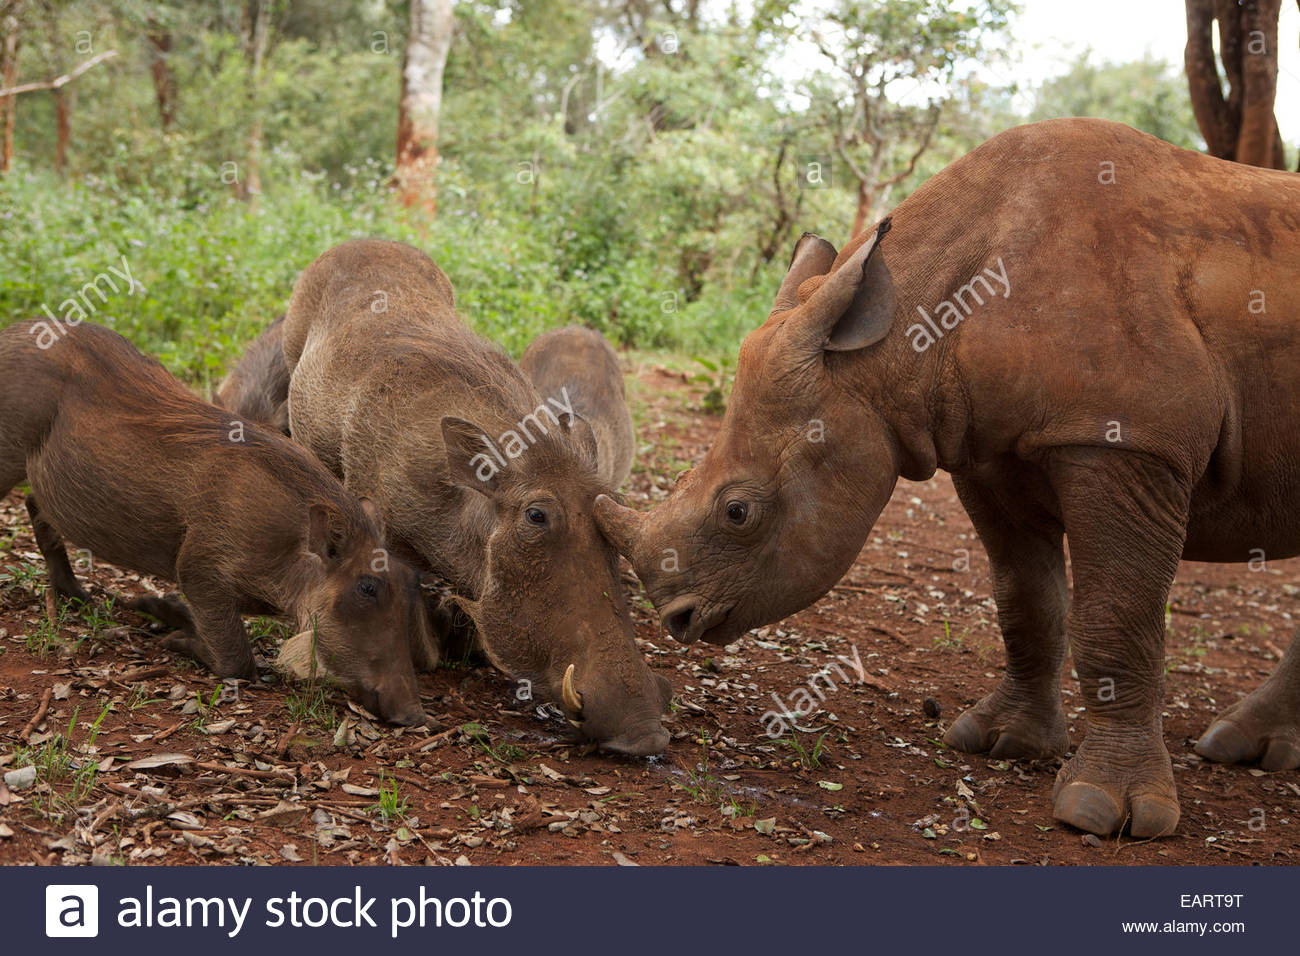 An orphan rhino socializes with wild pigs at the David Sheldrick Wildlife Orphanage. - Stock Image